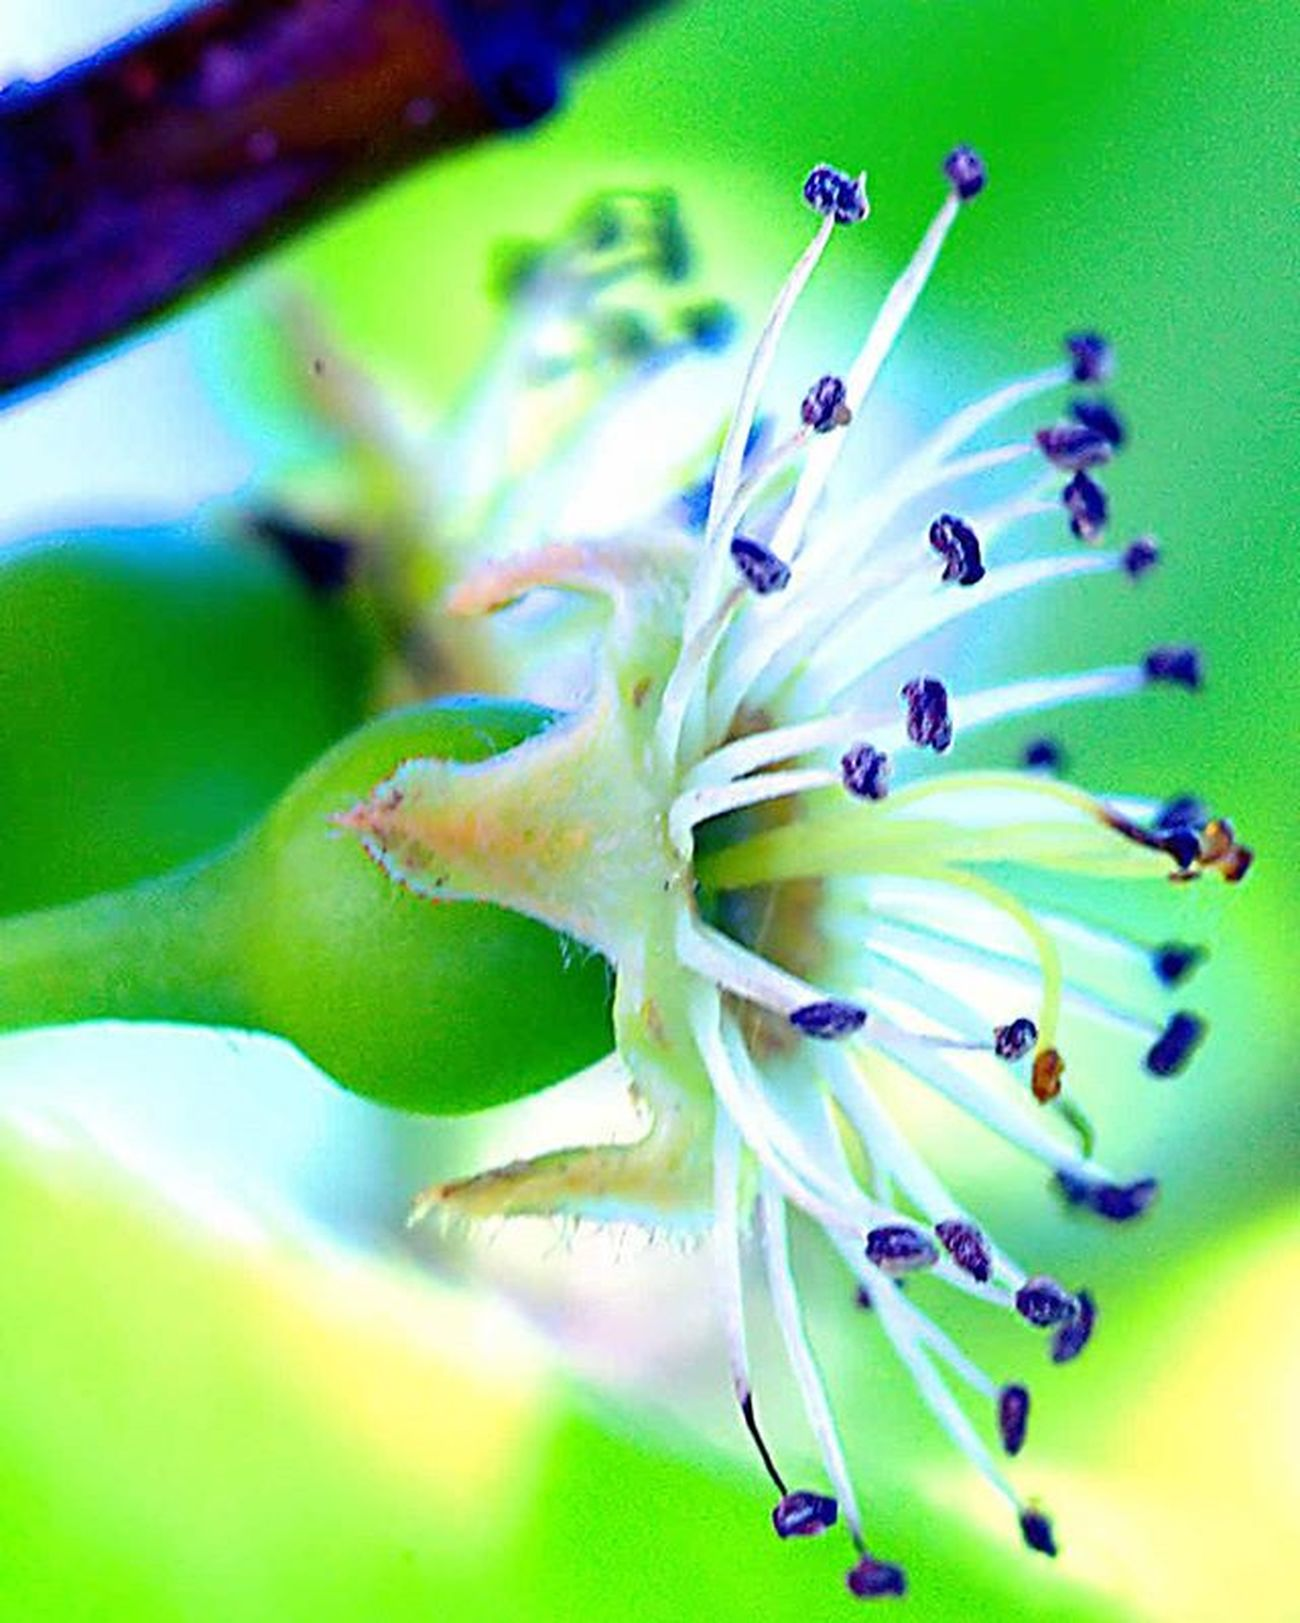 Stamens =) Stamens :) Stamens 1) Myworld_in_green 2) Ig_affair_weekly 3) Vms_macro 4) Small_world_upclose 5) 5star_images 6) Macro_vision 7) Sn_apr1 8) Mta_macro 9) Pic_groups 0) Macroclique 1) Tgif_nature 2) Pocket_family 3) Igglobalclubmacro 4) Macro_captures 5) Fotofanatics_macro_ 6) Ponyfony_flowers 7) Macroworld_tr 8) 9vaga_flowerscolor9 9) Flair_macro 0) Quintaflower 1) Ptk_macro 2) Naturehippys 3) Macro_secrets 4) Tv_colors 5) Macro_holic 6) ig_azhubs 7) macro_brilliance 8) 9vaga_macro9 9) show_us_macro 0) global_nature_macro